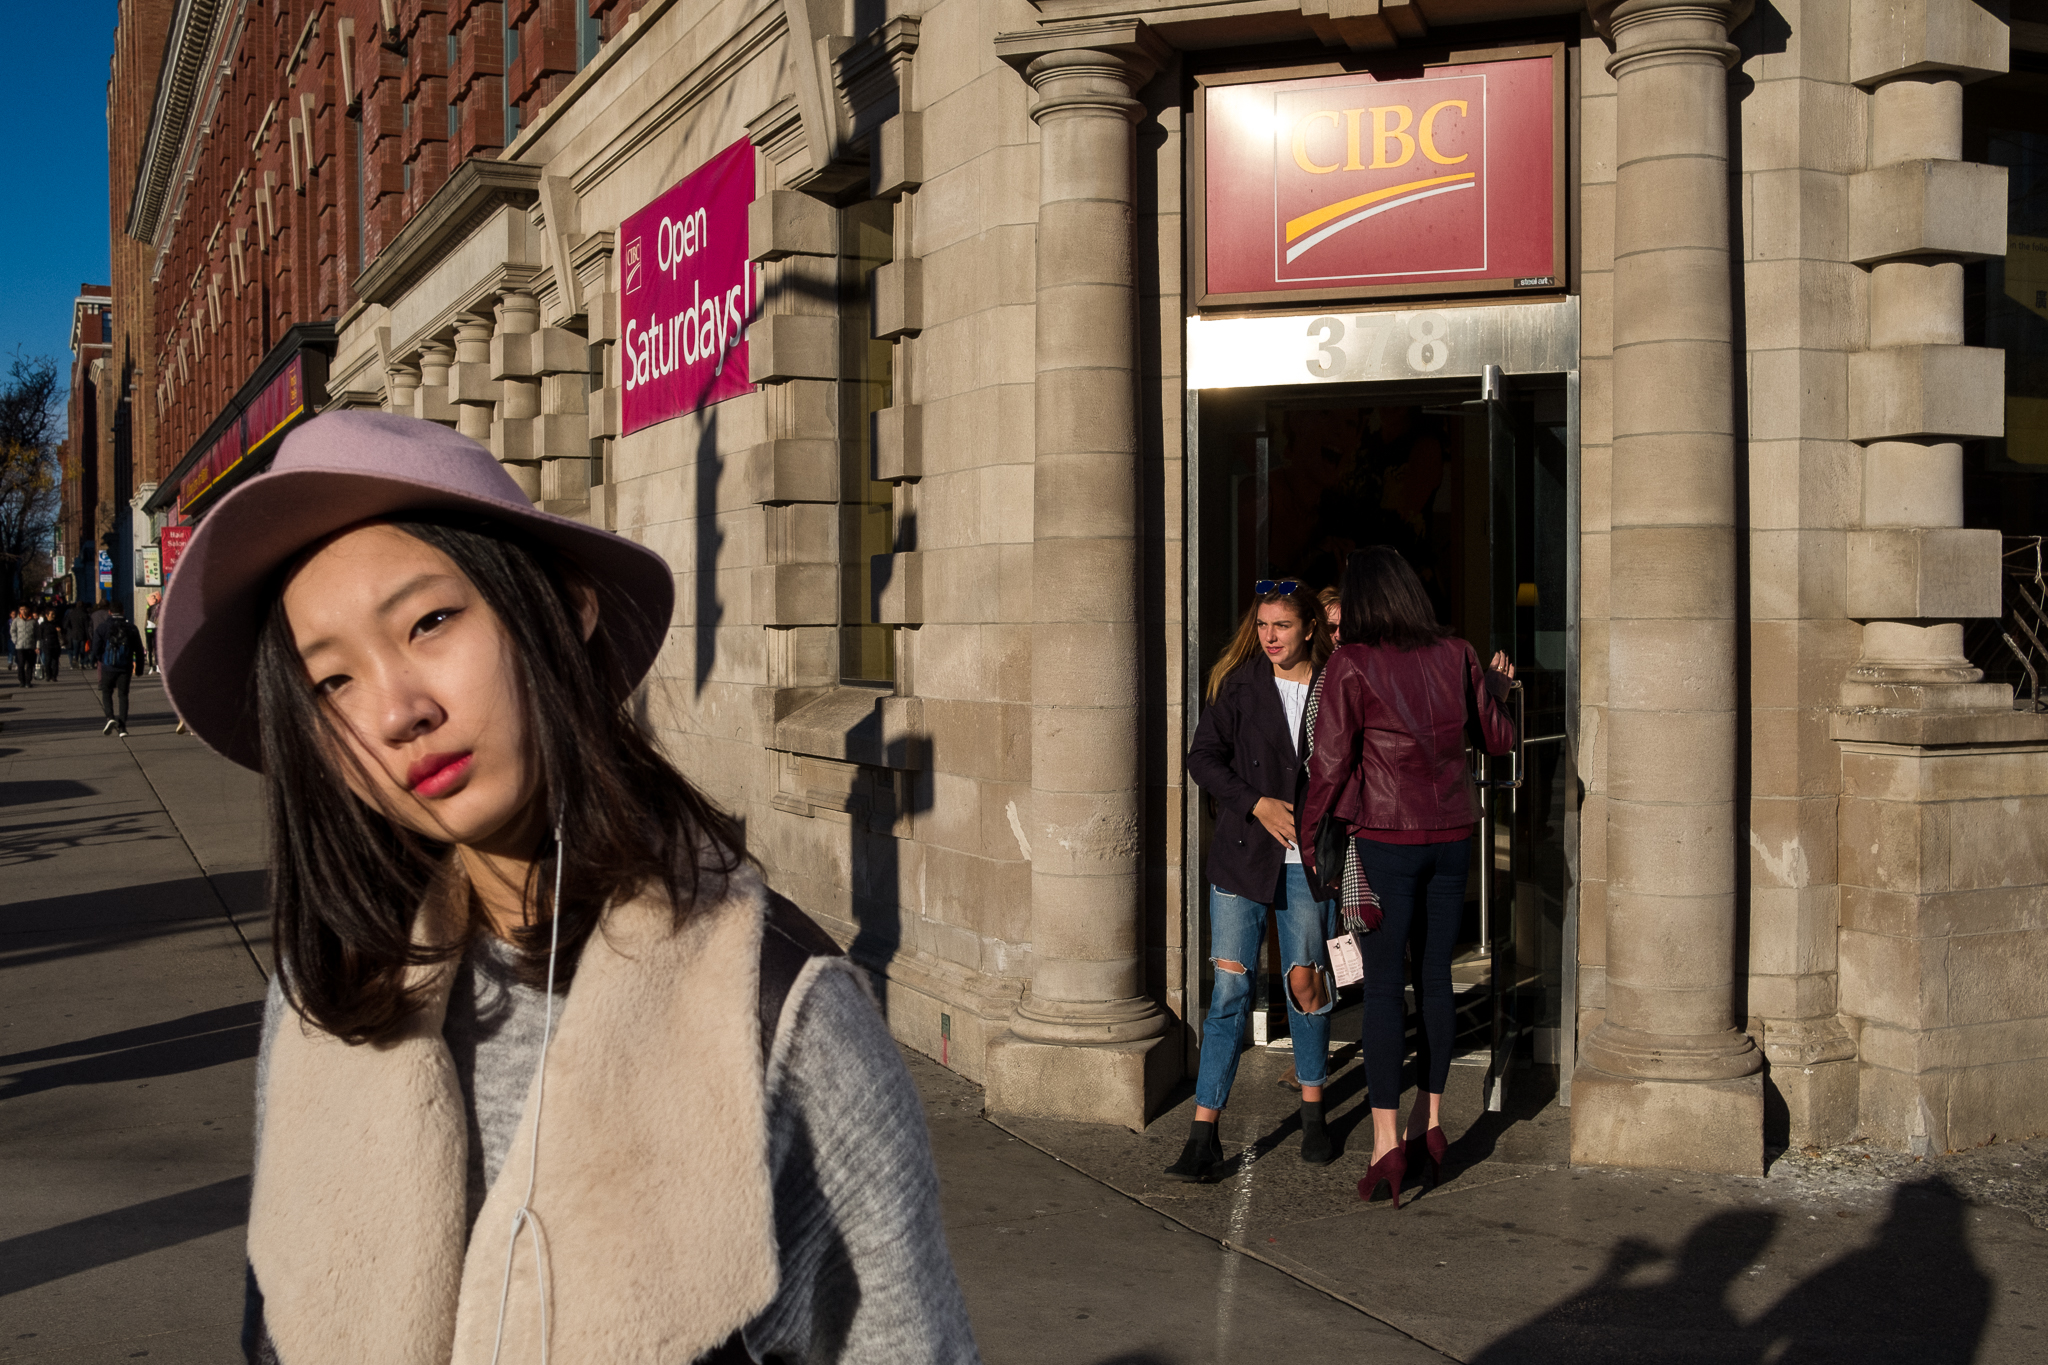 Fuji 23mm f2 Street Photography Review - Great Little Lens